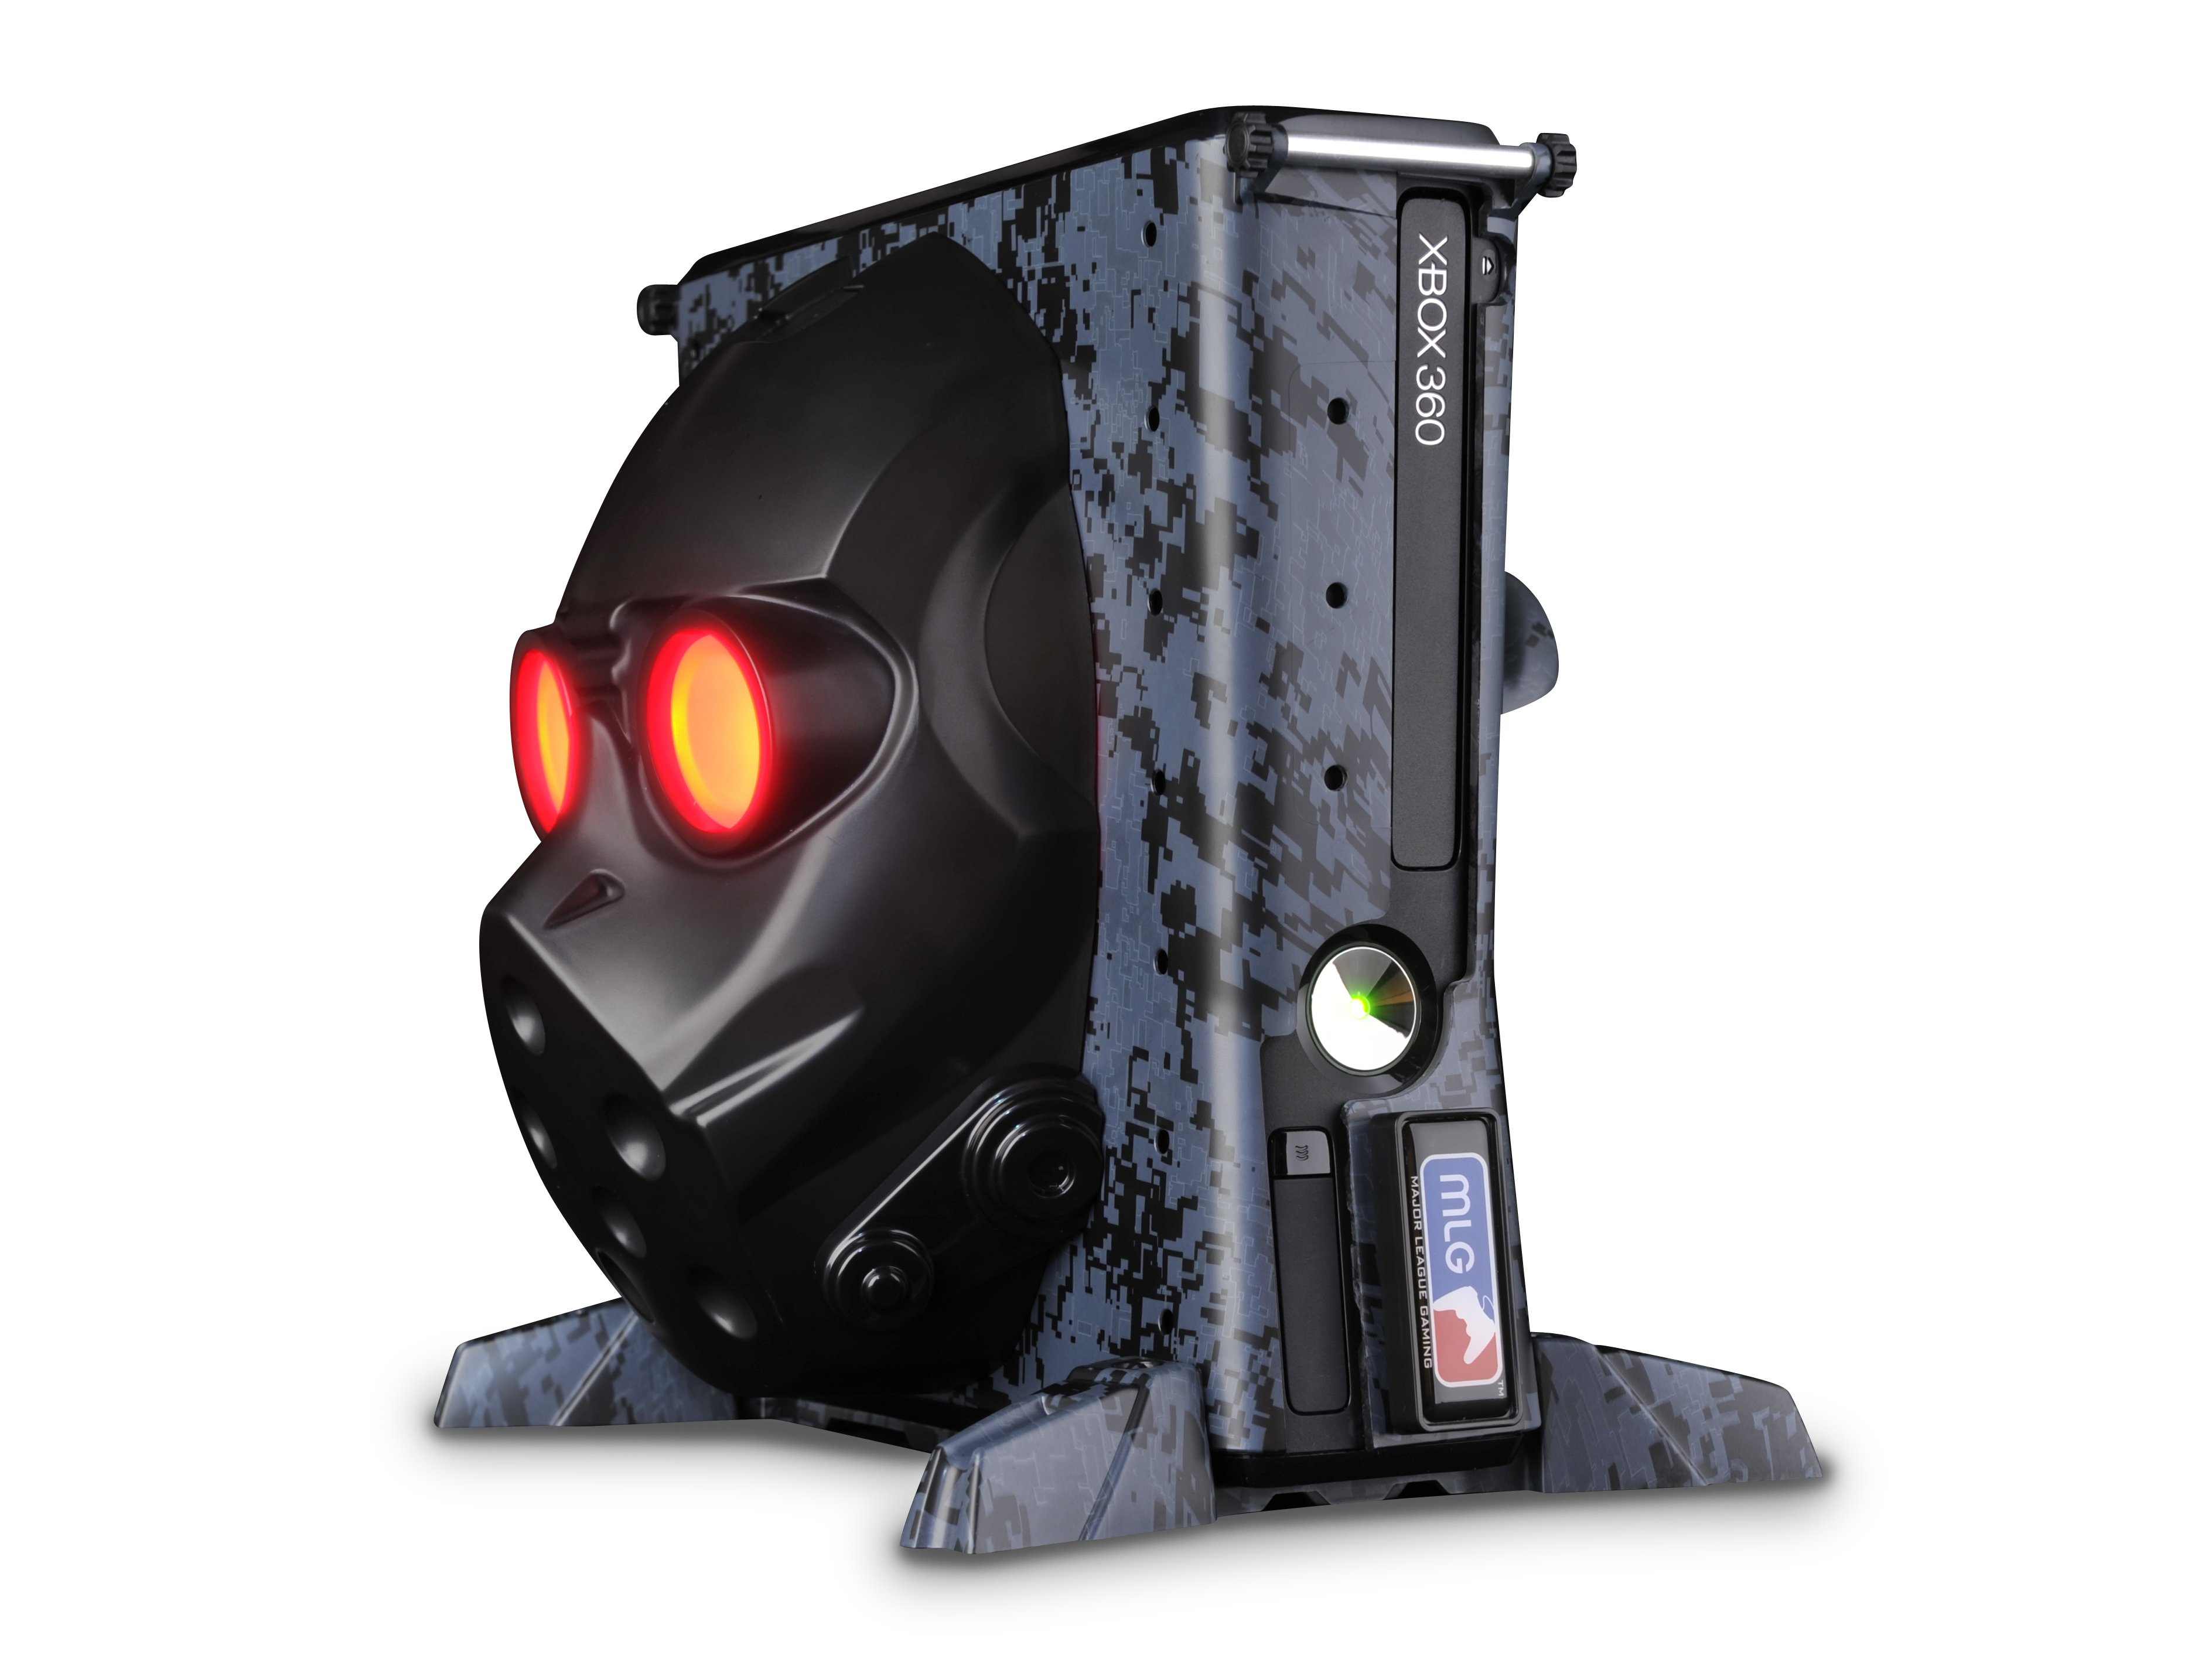 Cool Pictures Of Xbox 360